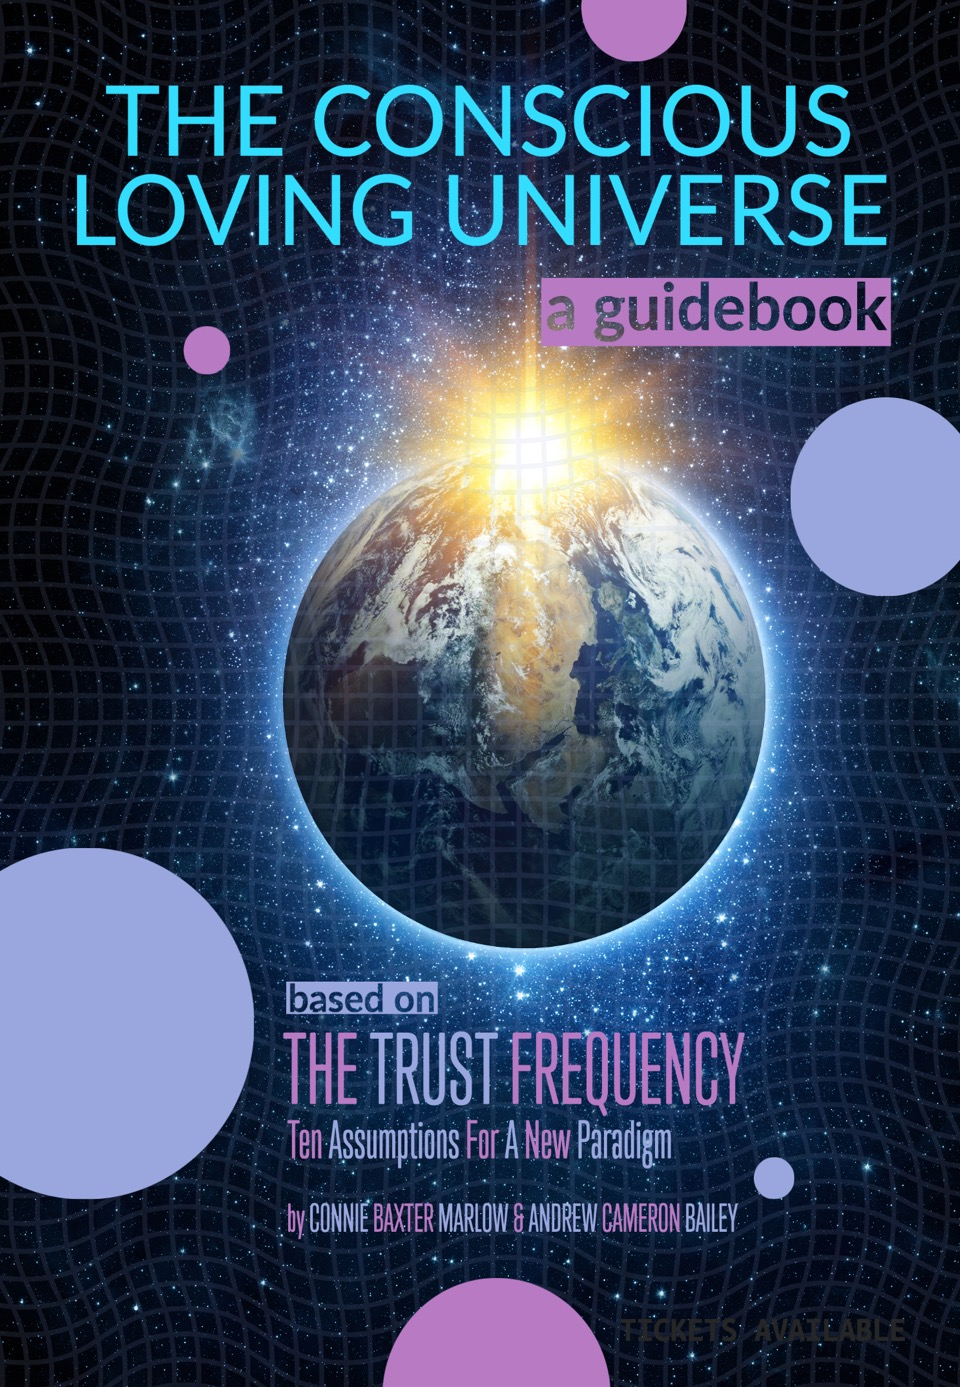 THE CONSCIOUS LOVING UNIVERSE: A Guidebook